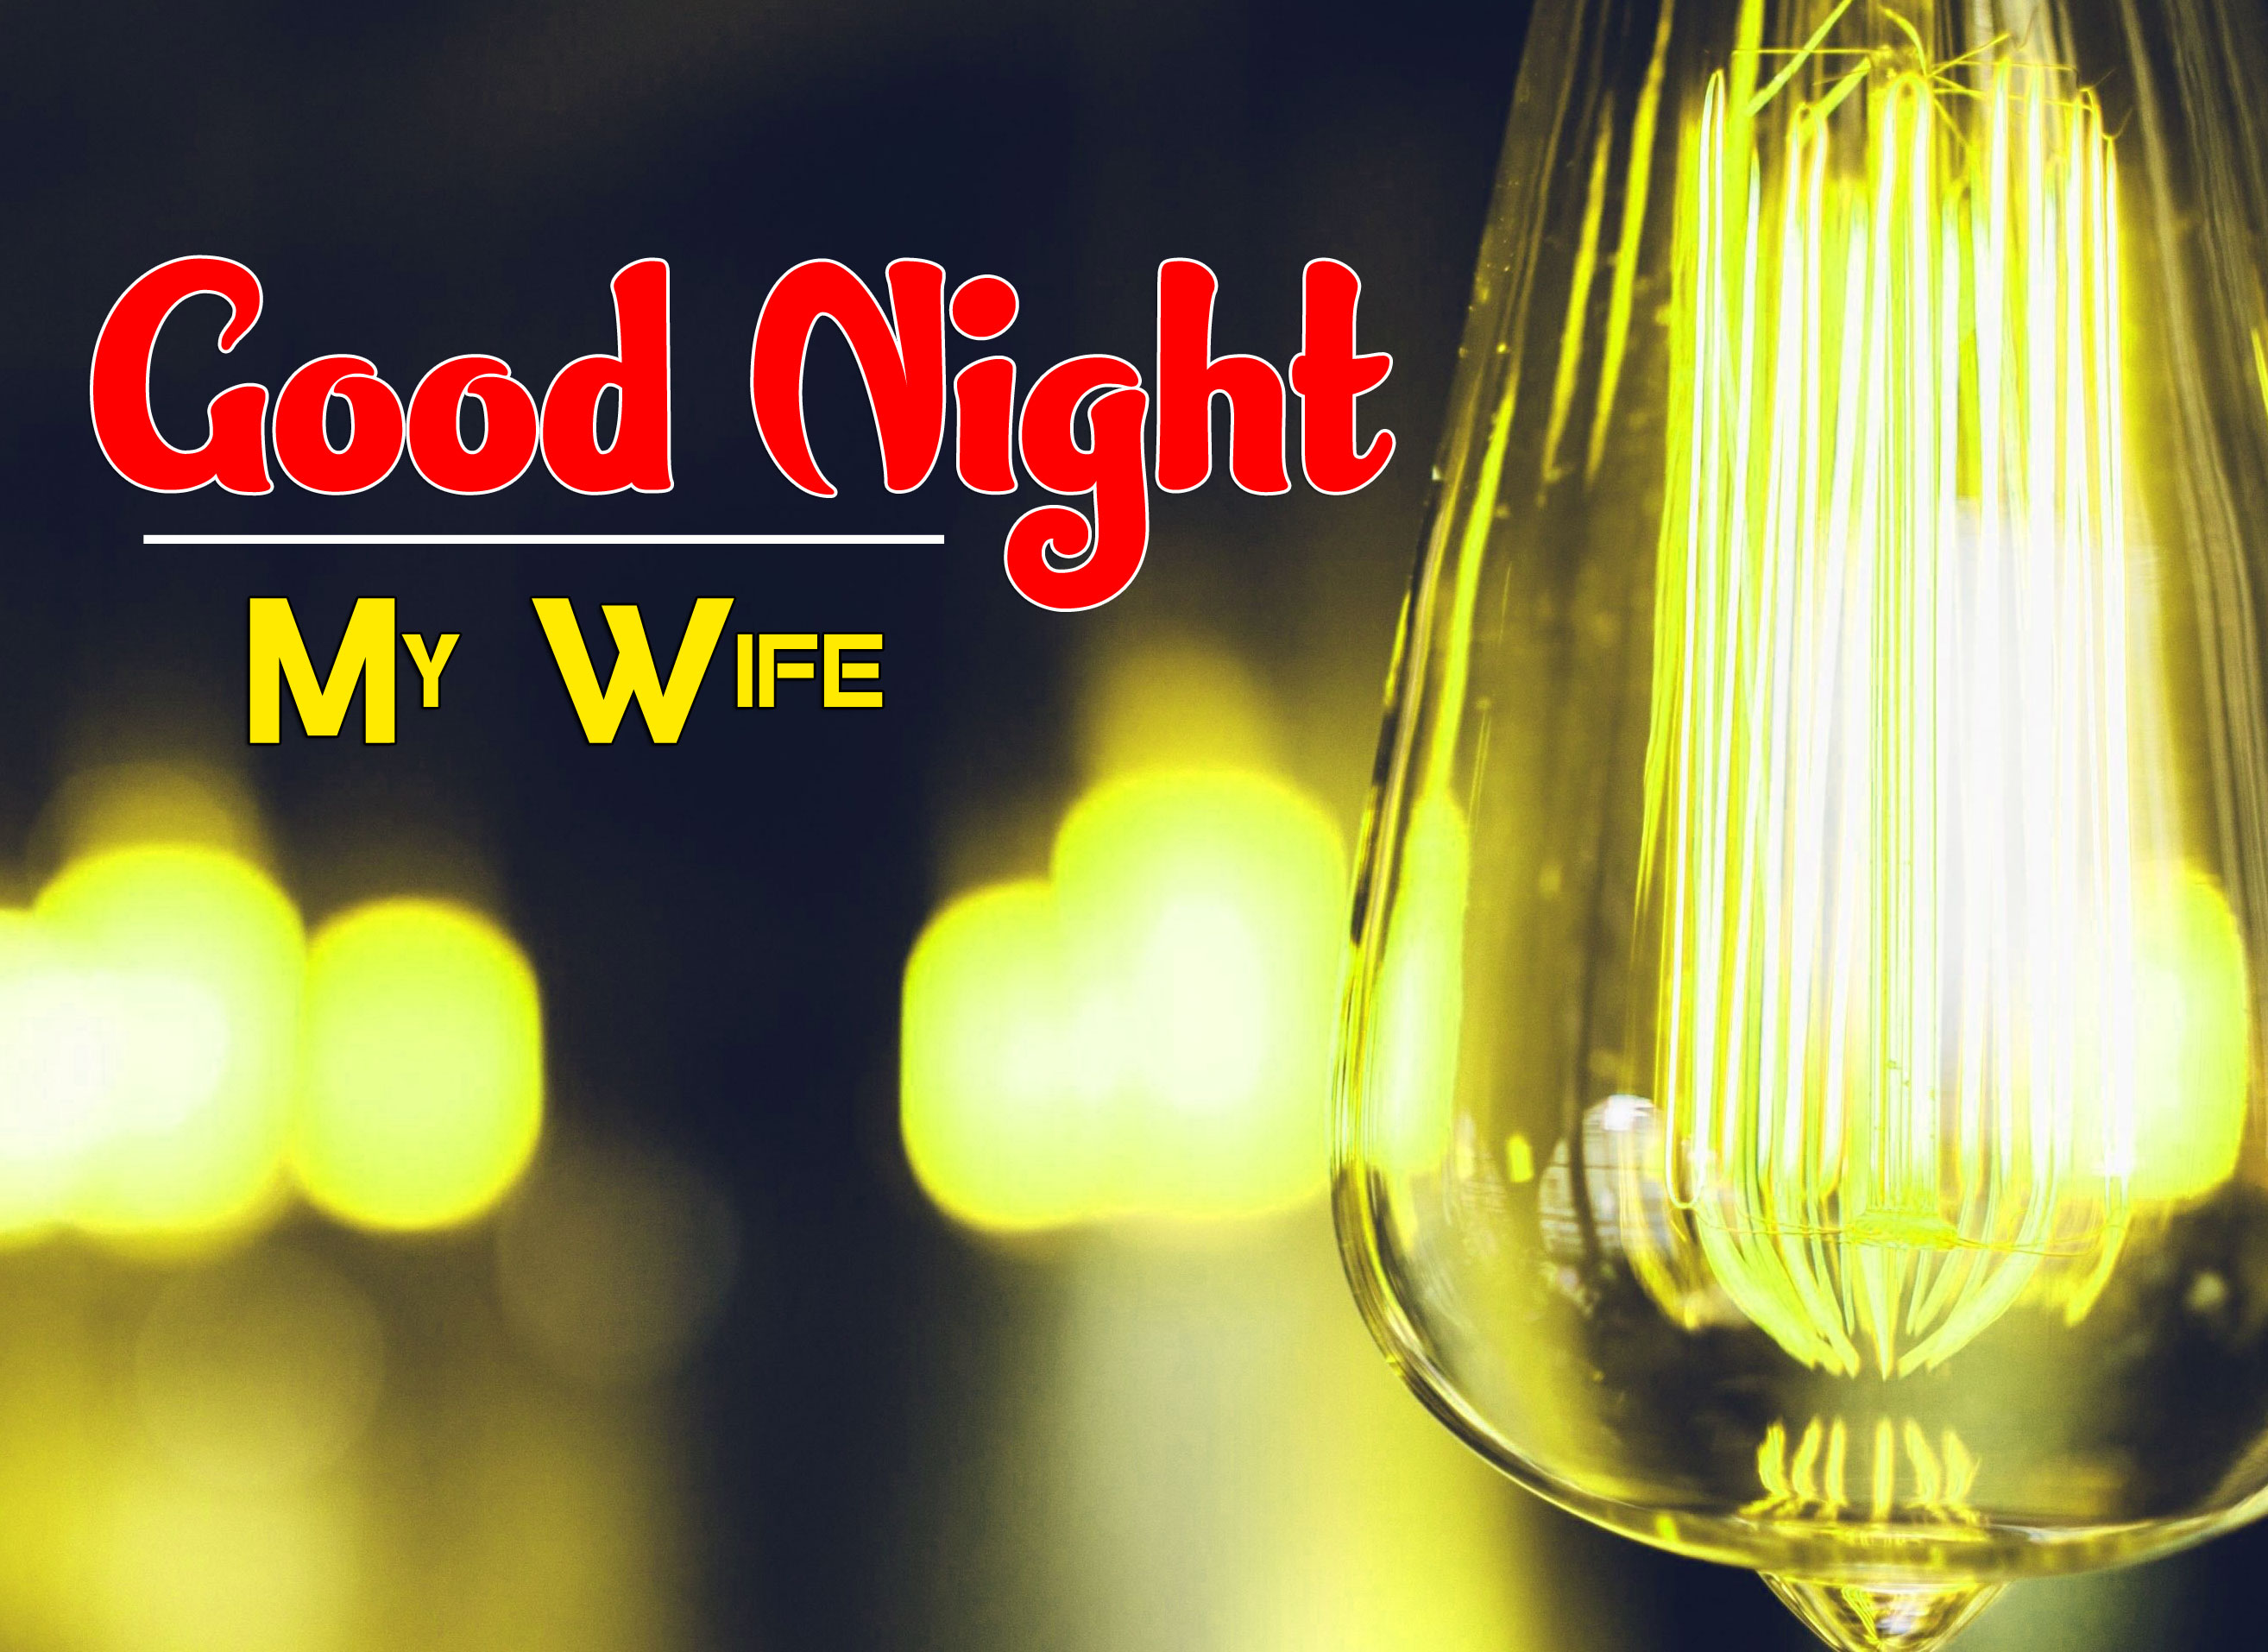 New Good Night Wishes Images Downlaod